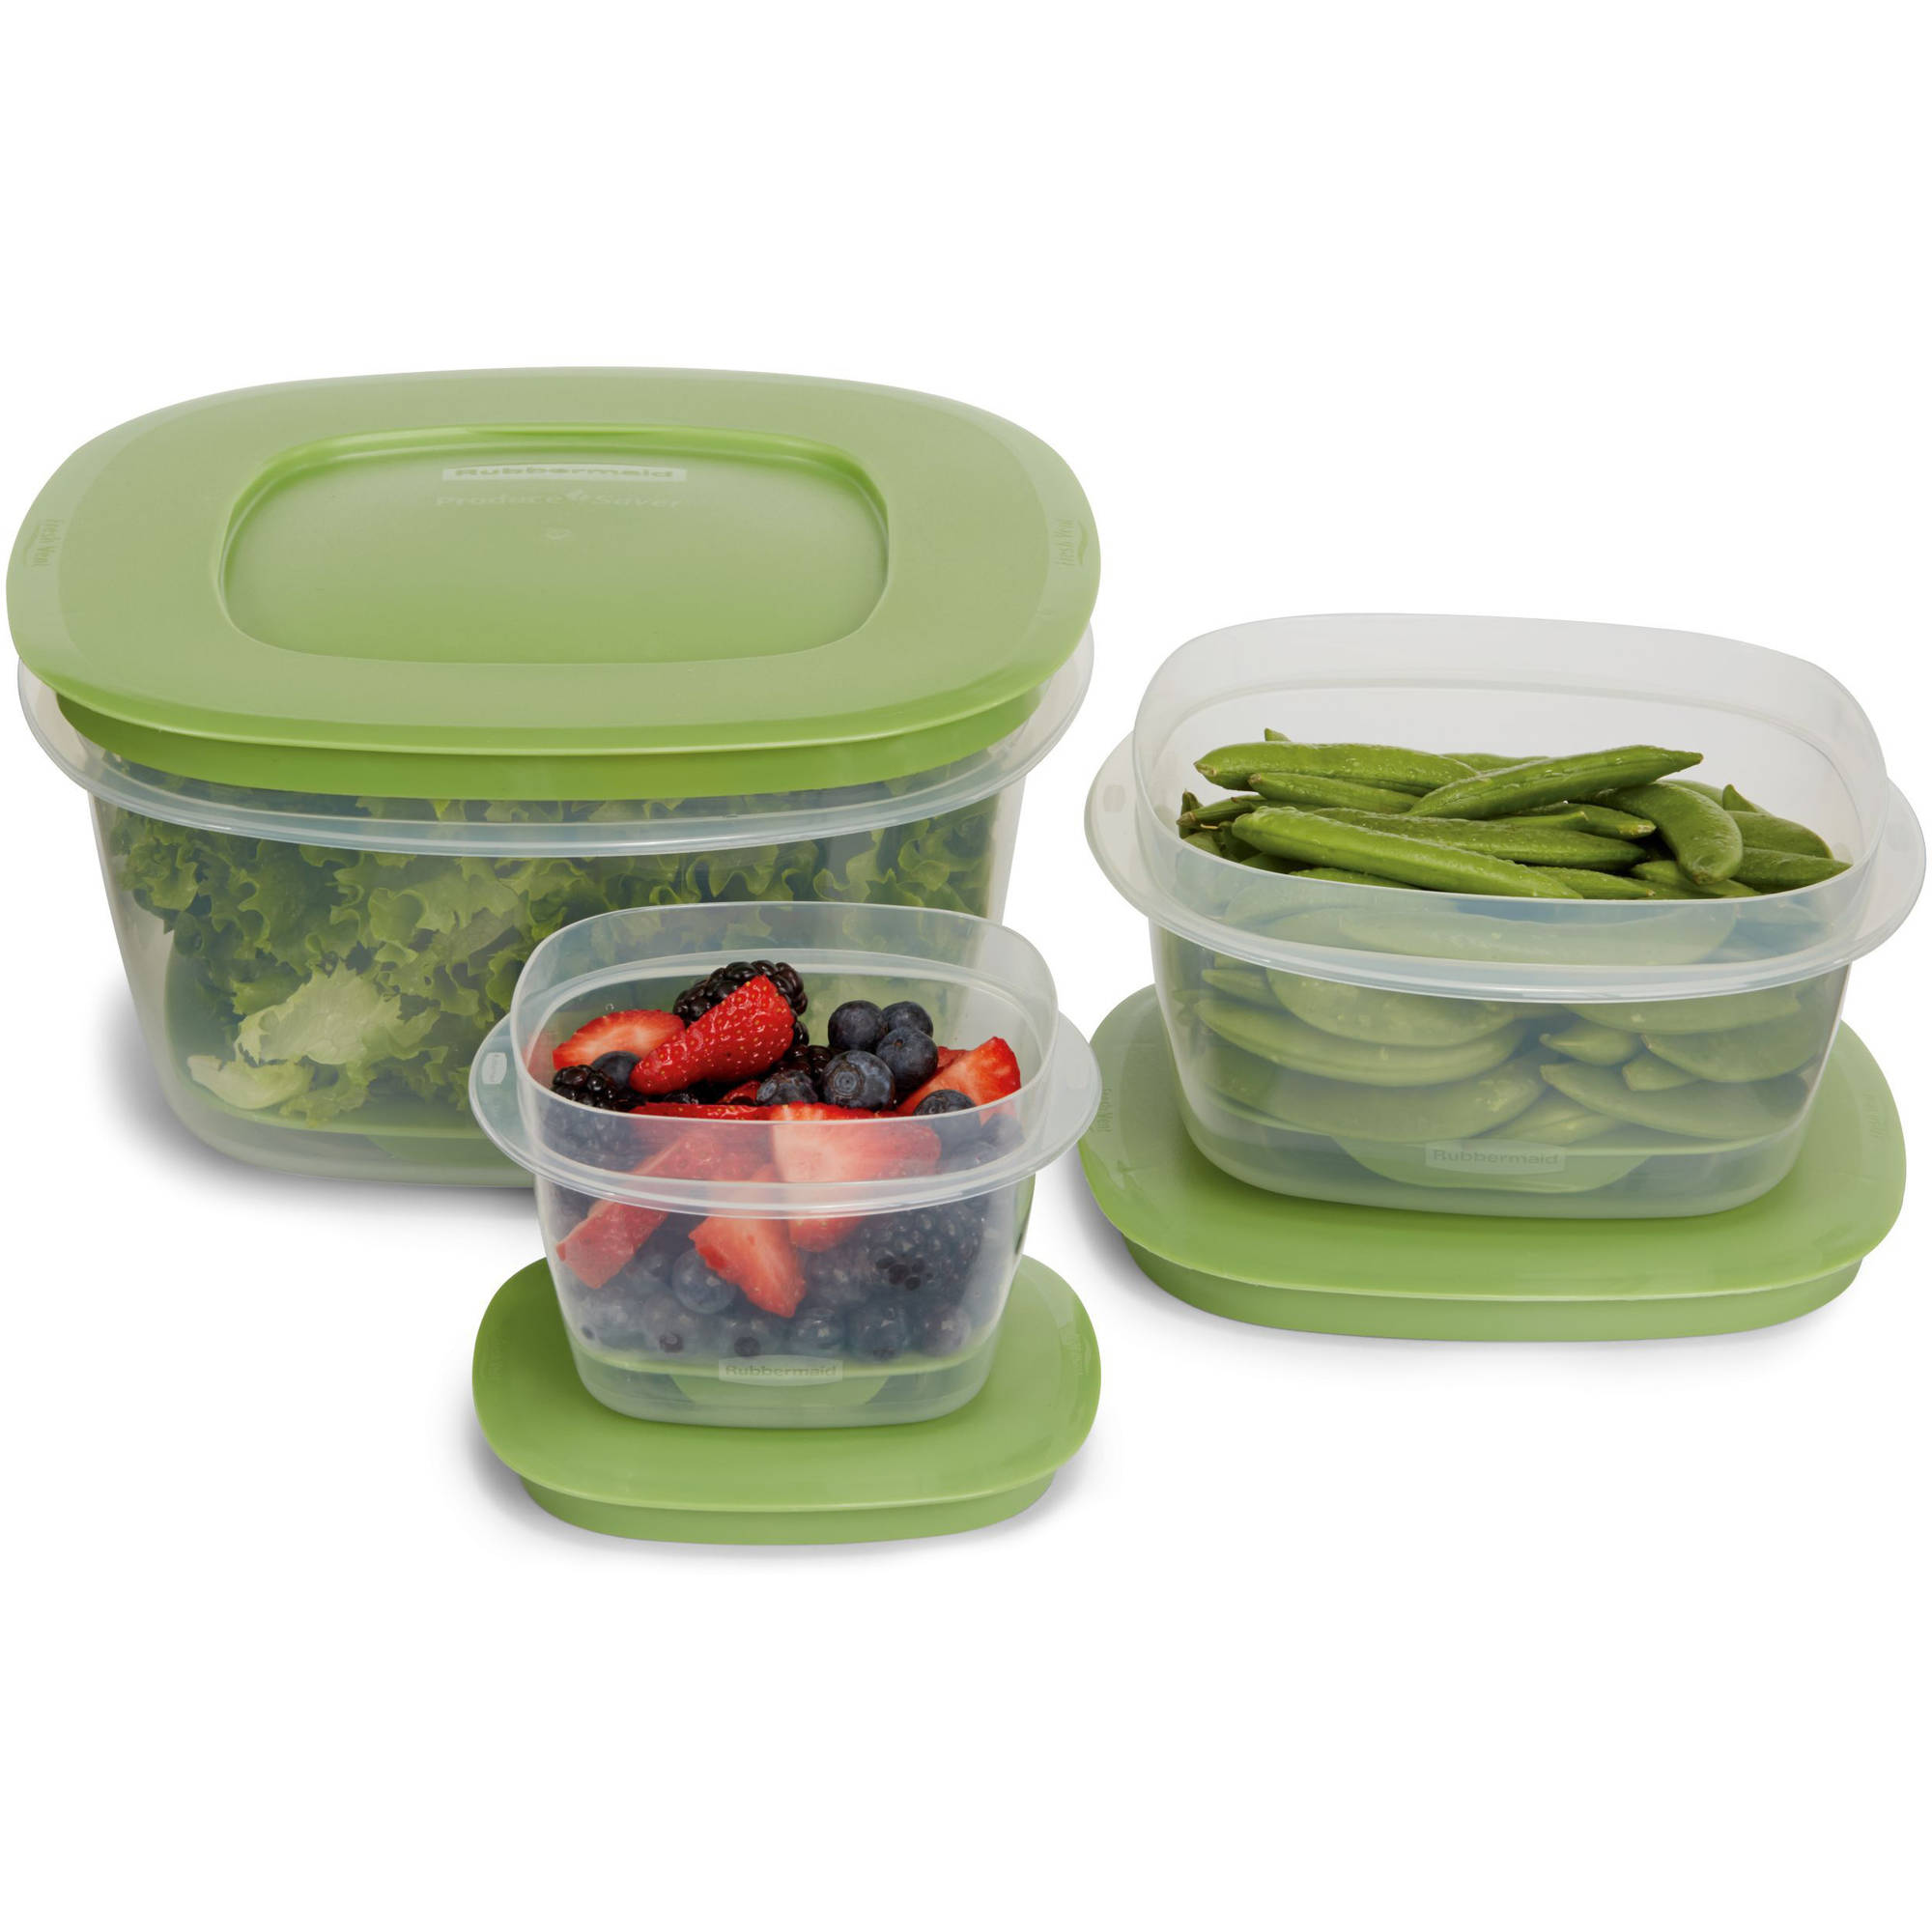 Rubbermaid Produce Saver Food Storage Container, 6-Piece Set